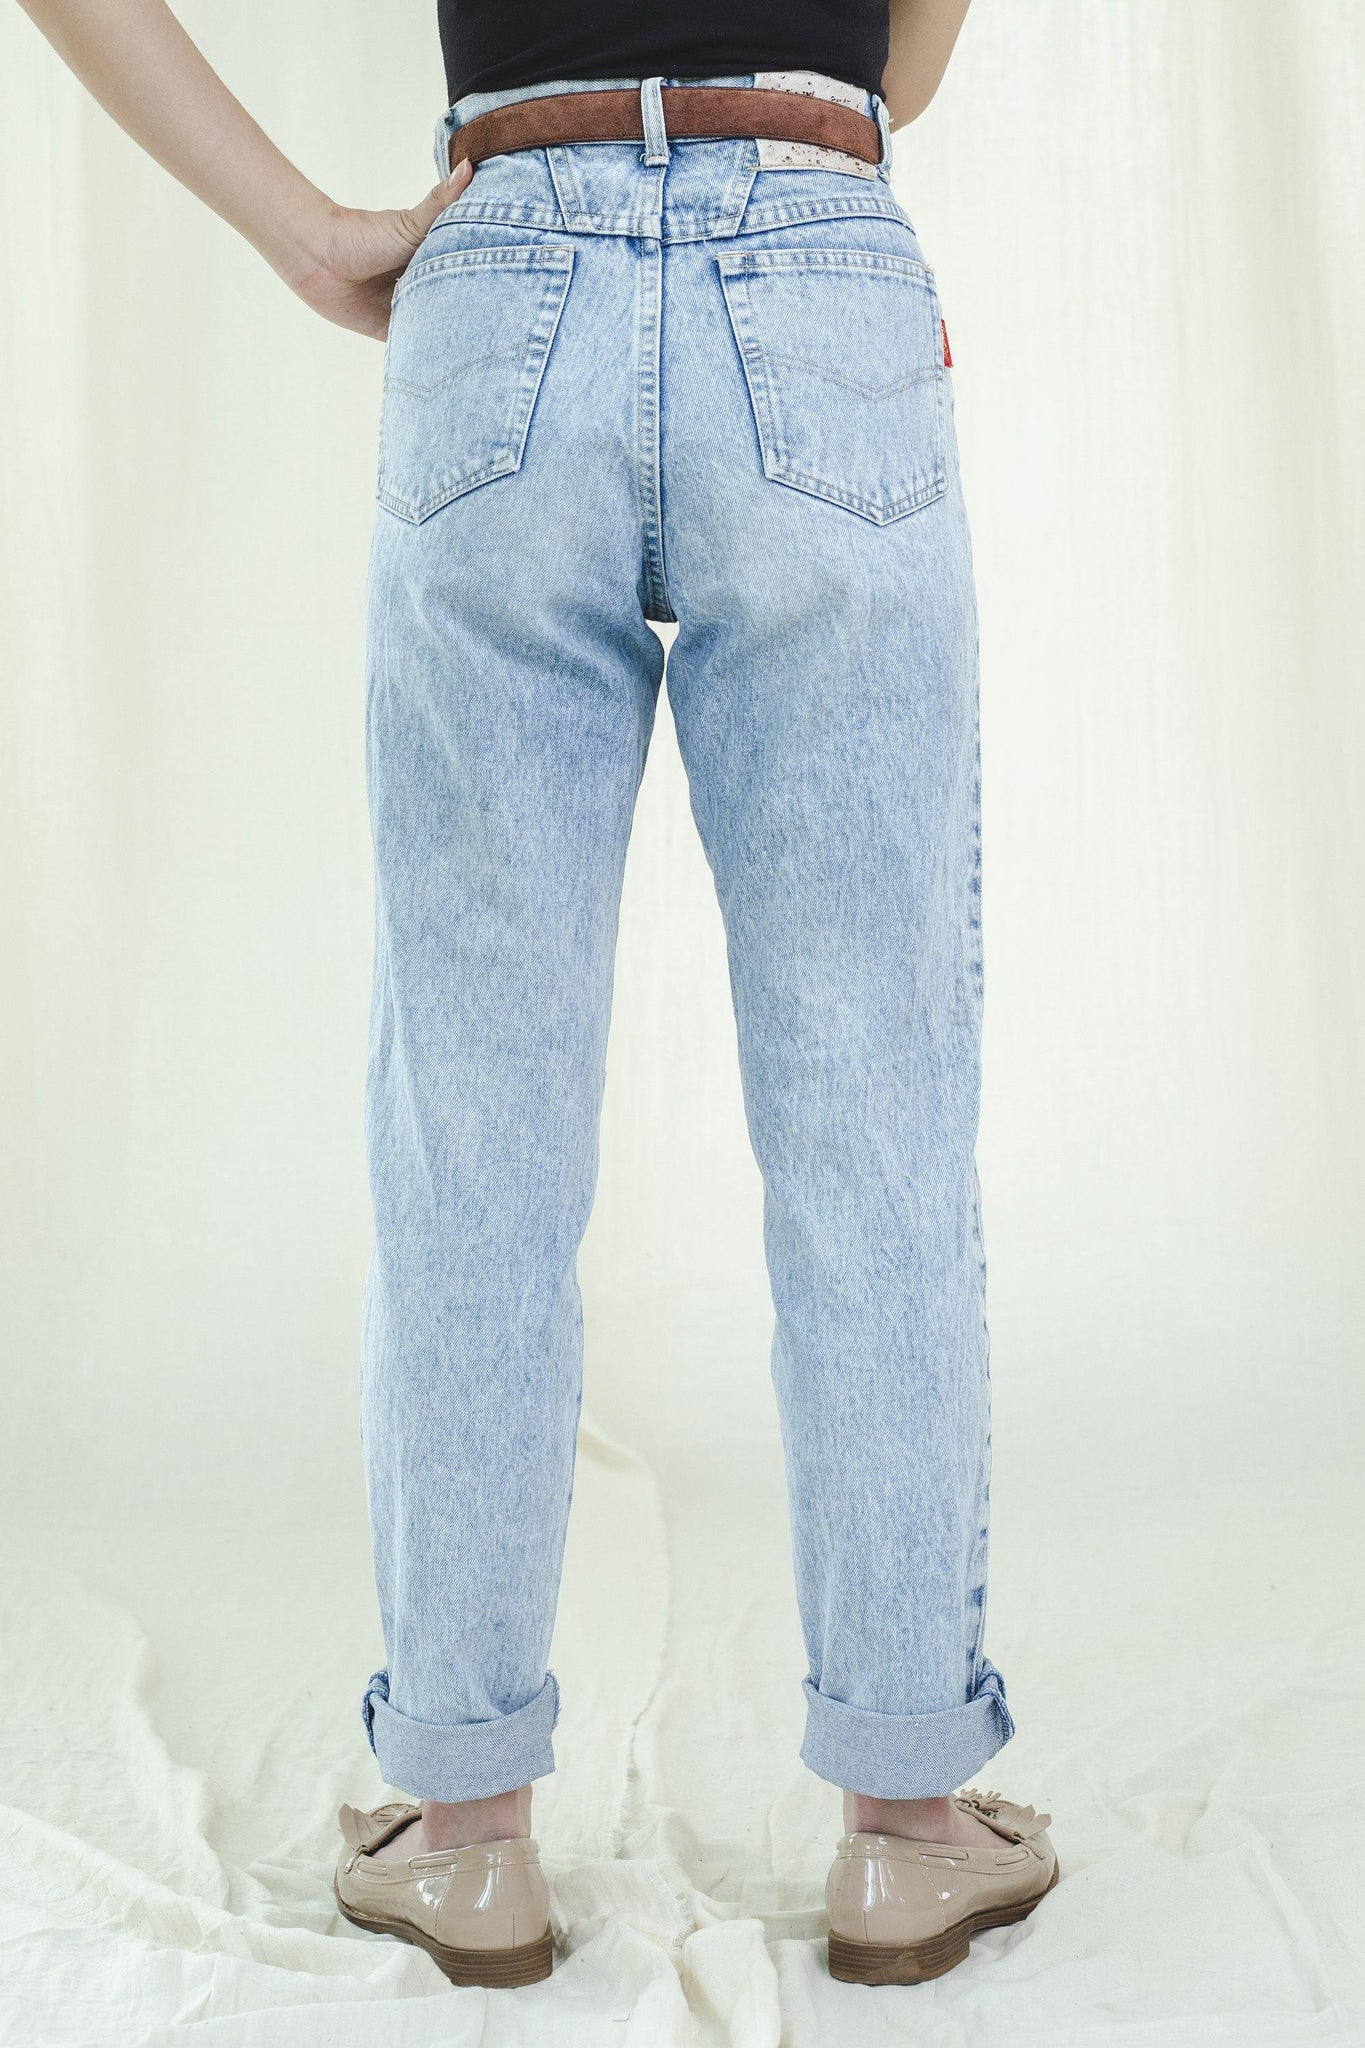 Jeans | Light blue | Vintage 1980s - Sugar & Cream Vintage